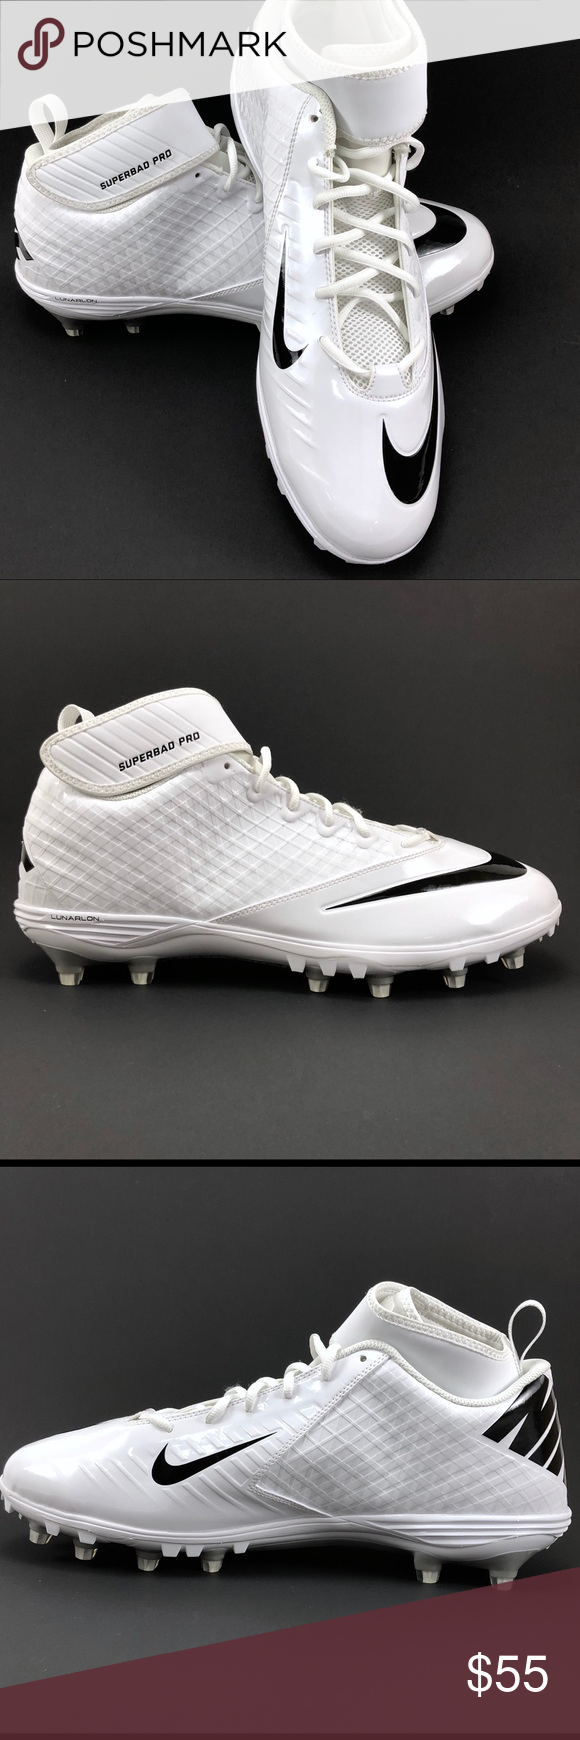 623f17c93417 Nike Mens 17 Lunar Superbad Pro TD Football Cleats Size 17. NEW Nike Lunar  Superbad Pro TD Football Cleats White   Black 511334-101. Check out the  photos!